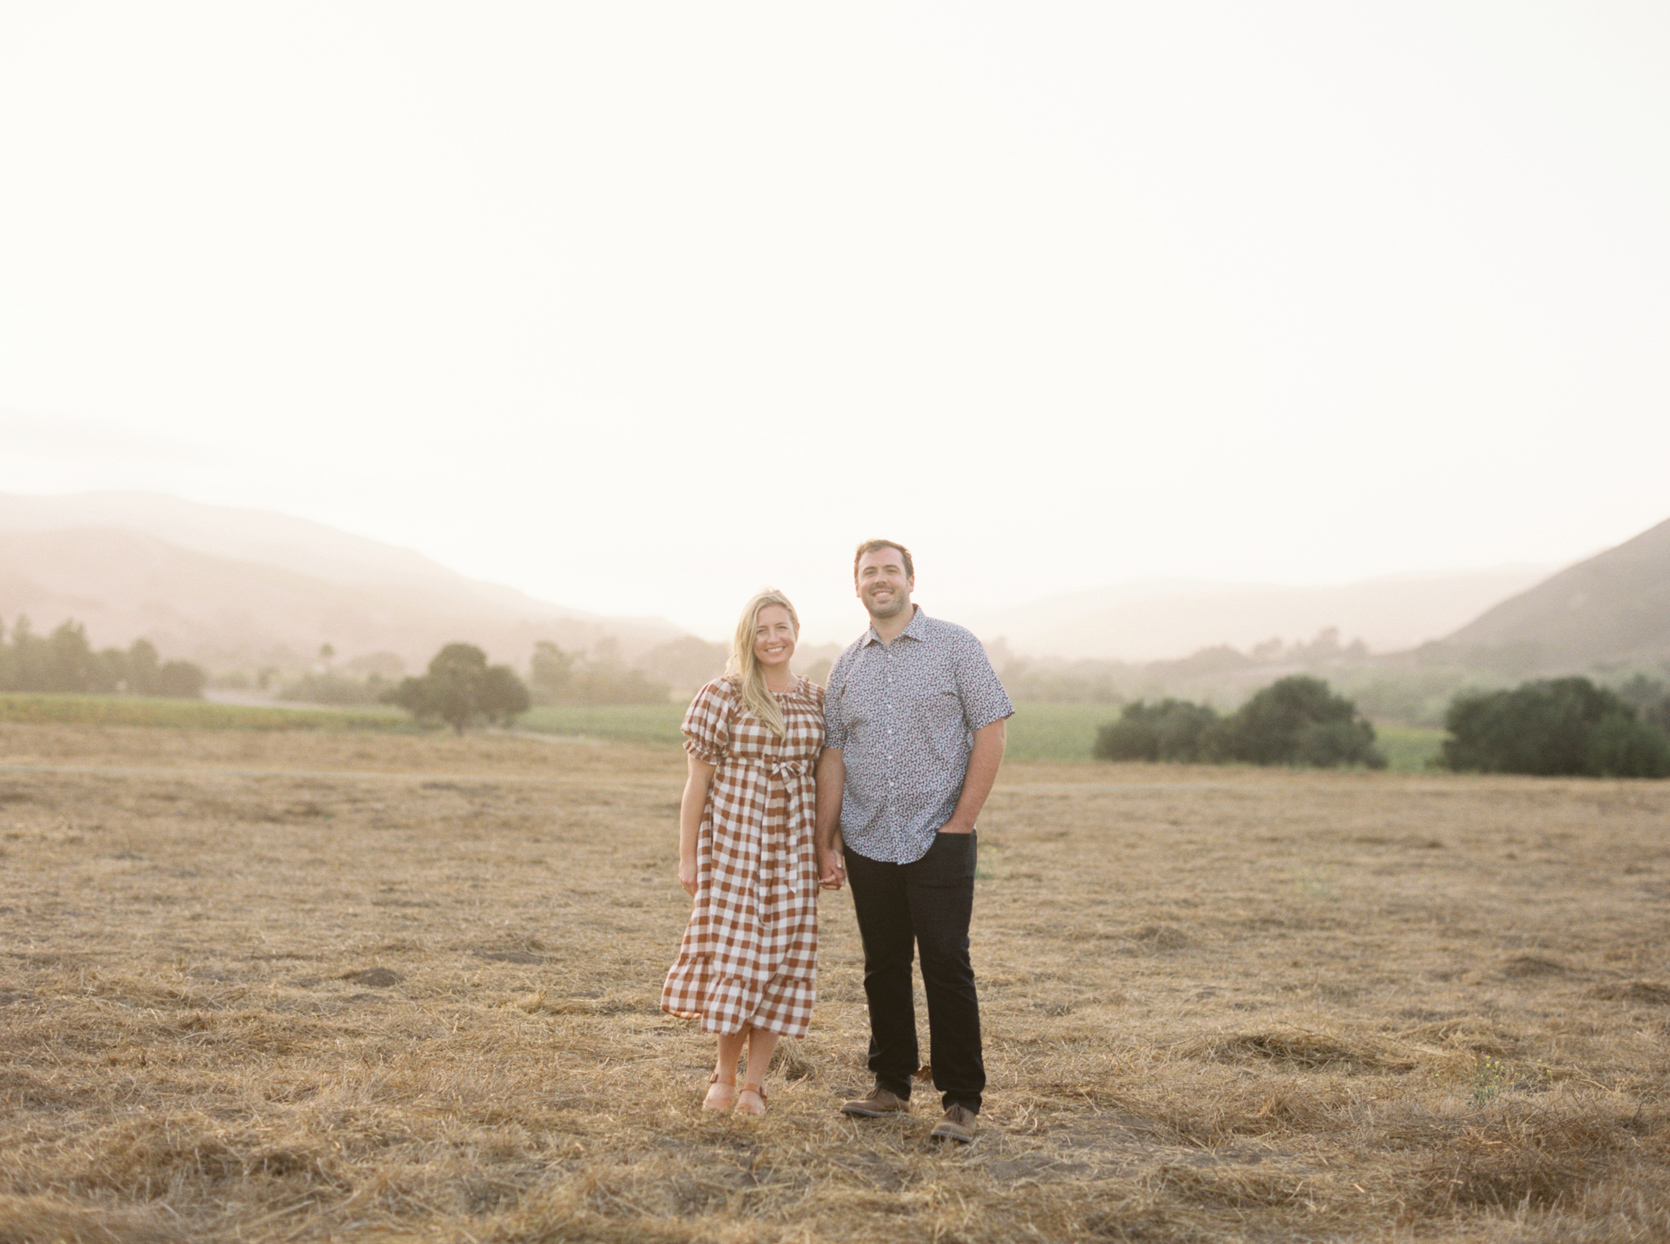 bride in gingham dress and groom holding hands in field